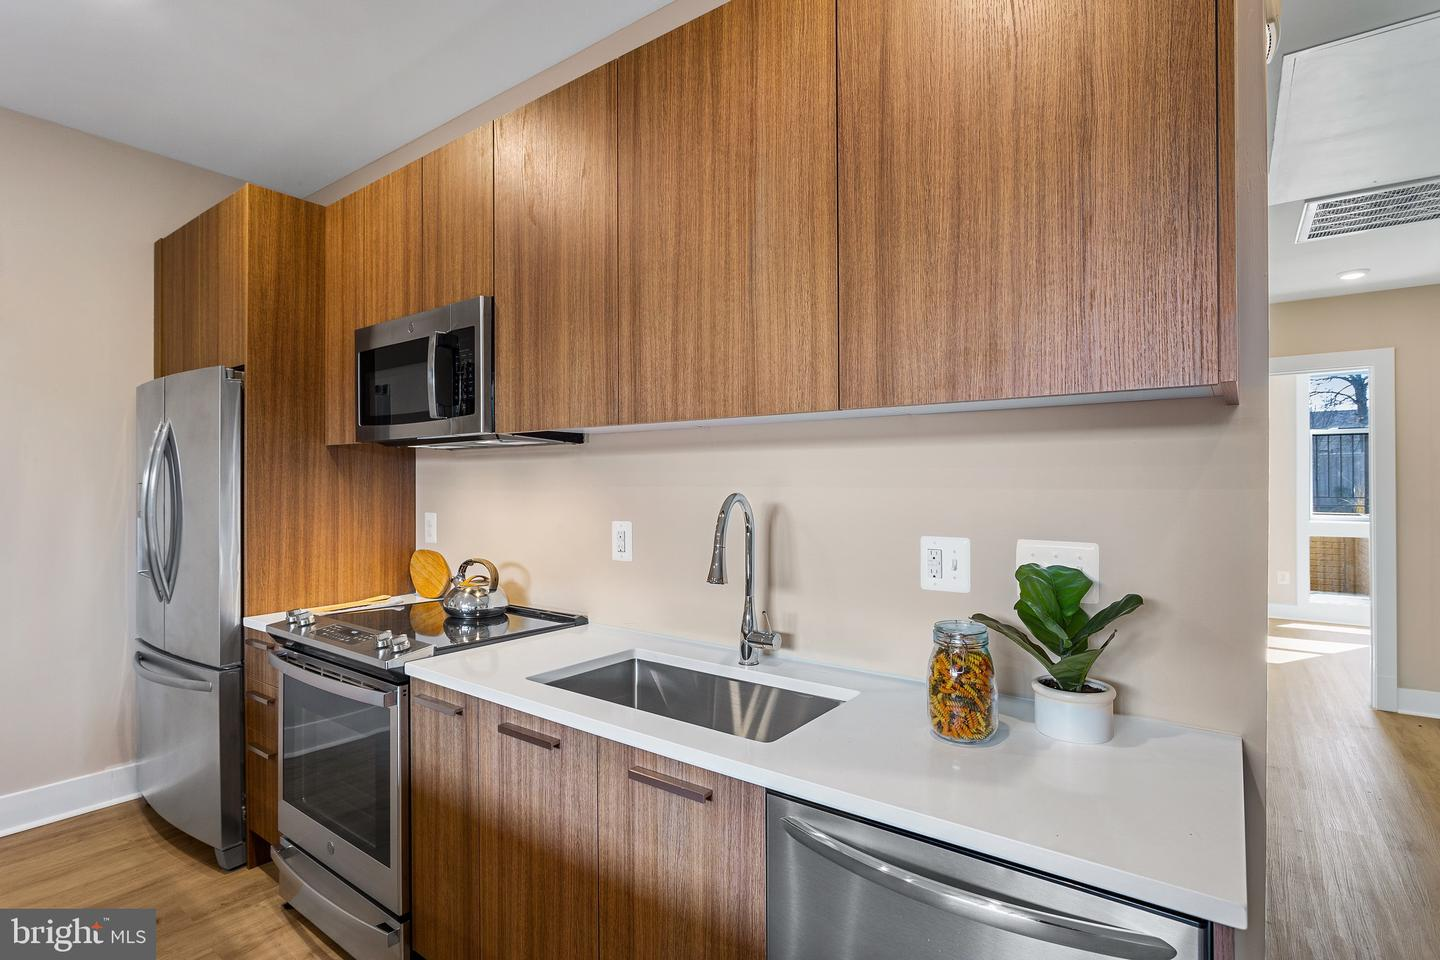 1116 SOUTH HIGHLAND STREET, ARLINGTON, Virginia 22204, 2 Bedrooms Bedrooms, ,1 BathroomBathrooms,Residential,For Sale,SOUTH HIGHLAND STREET,VAAR179100